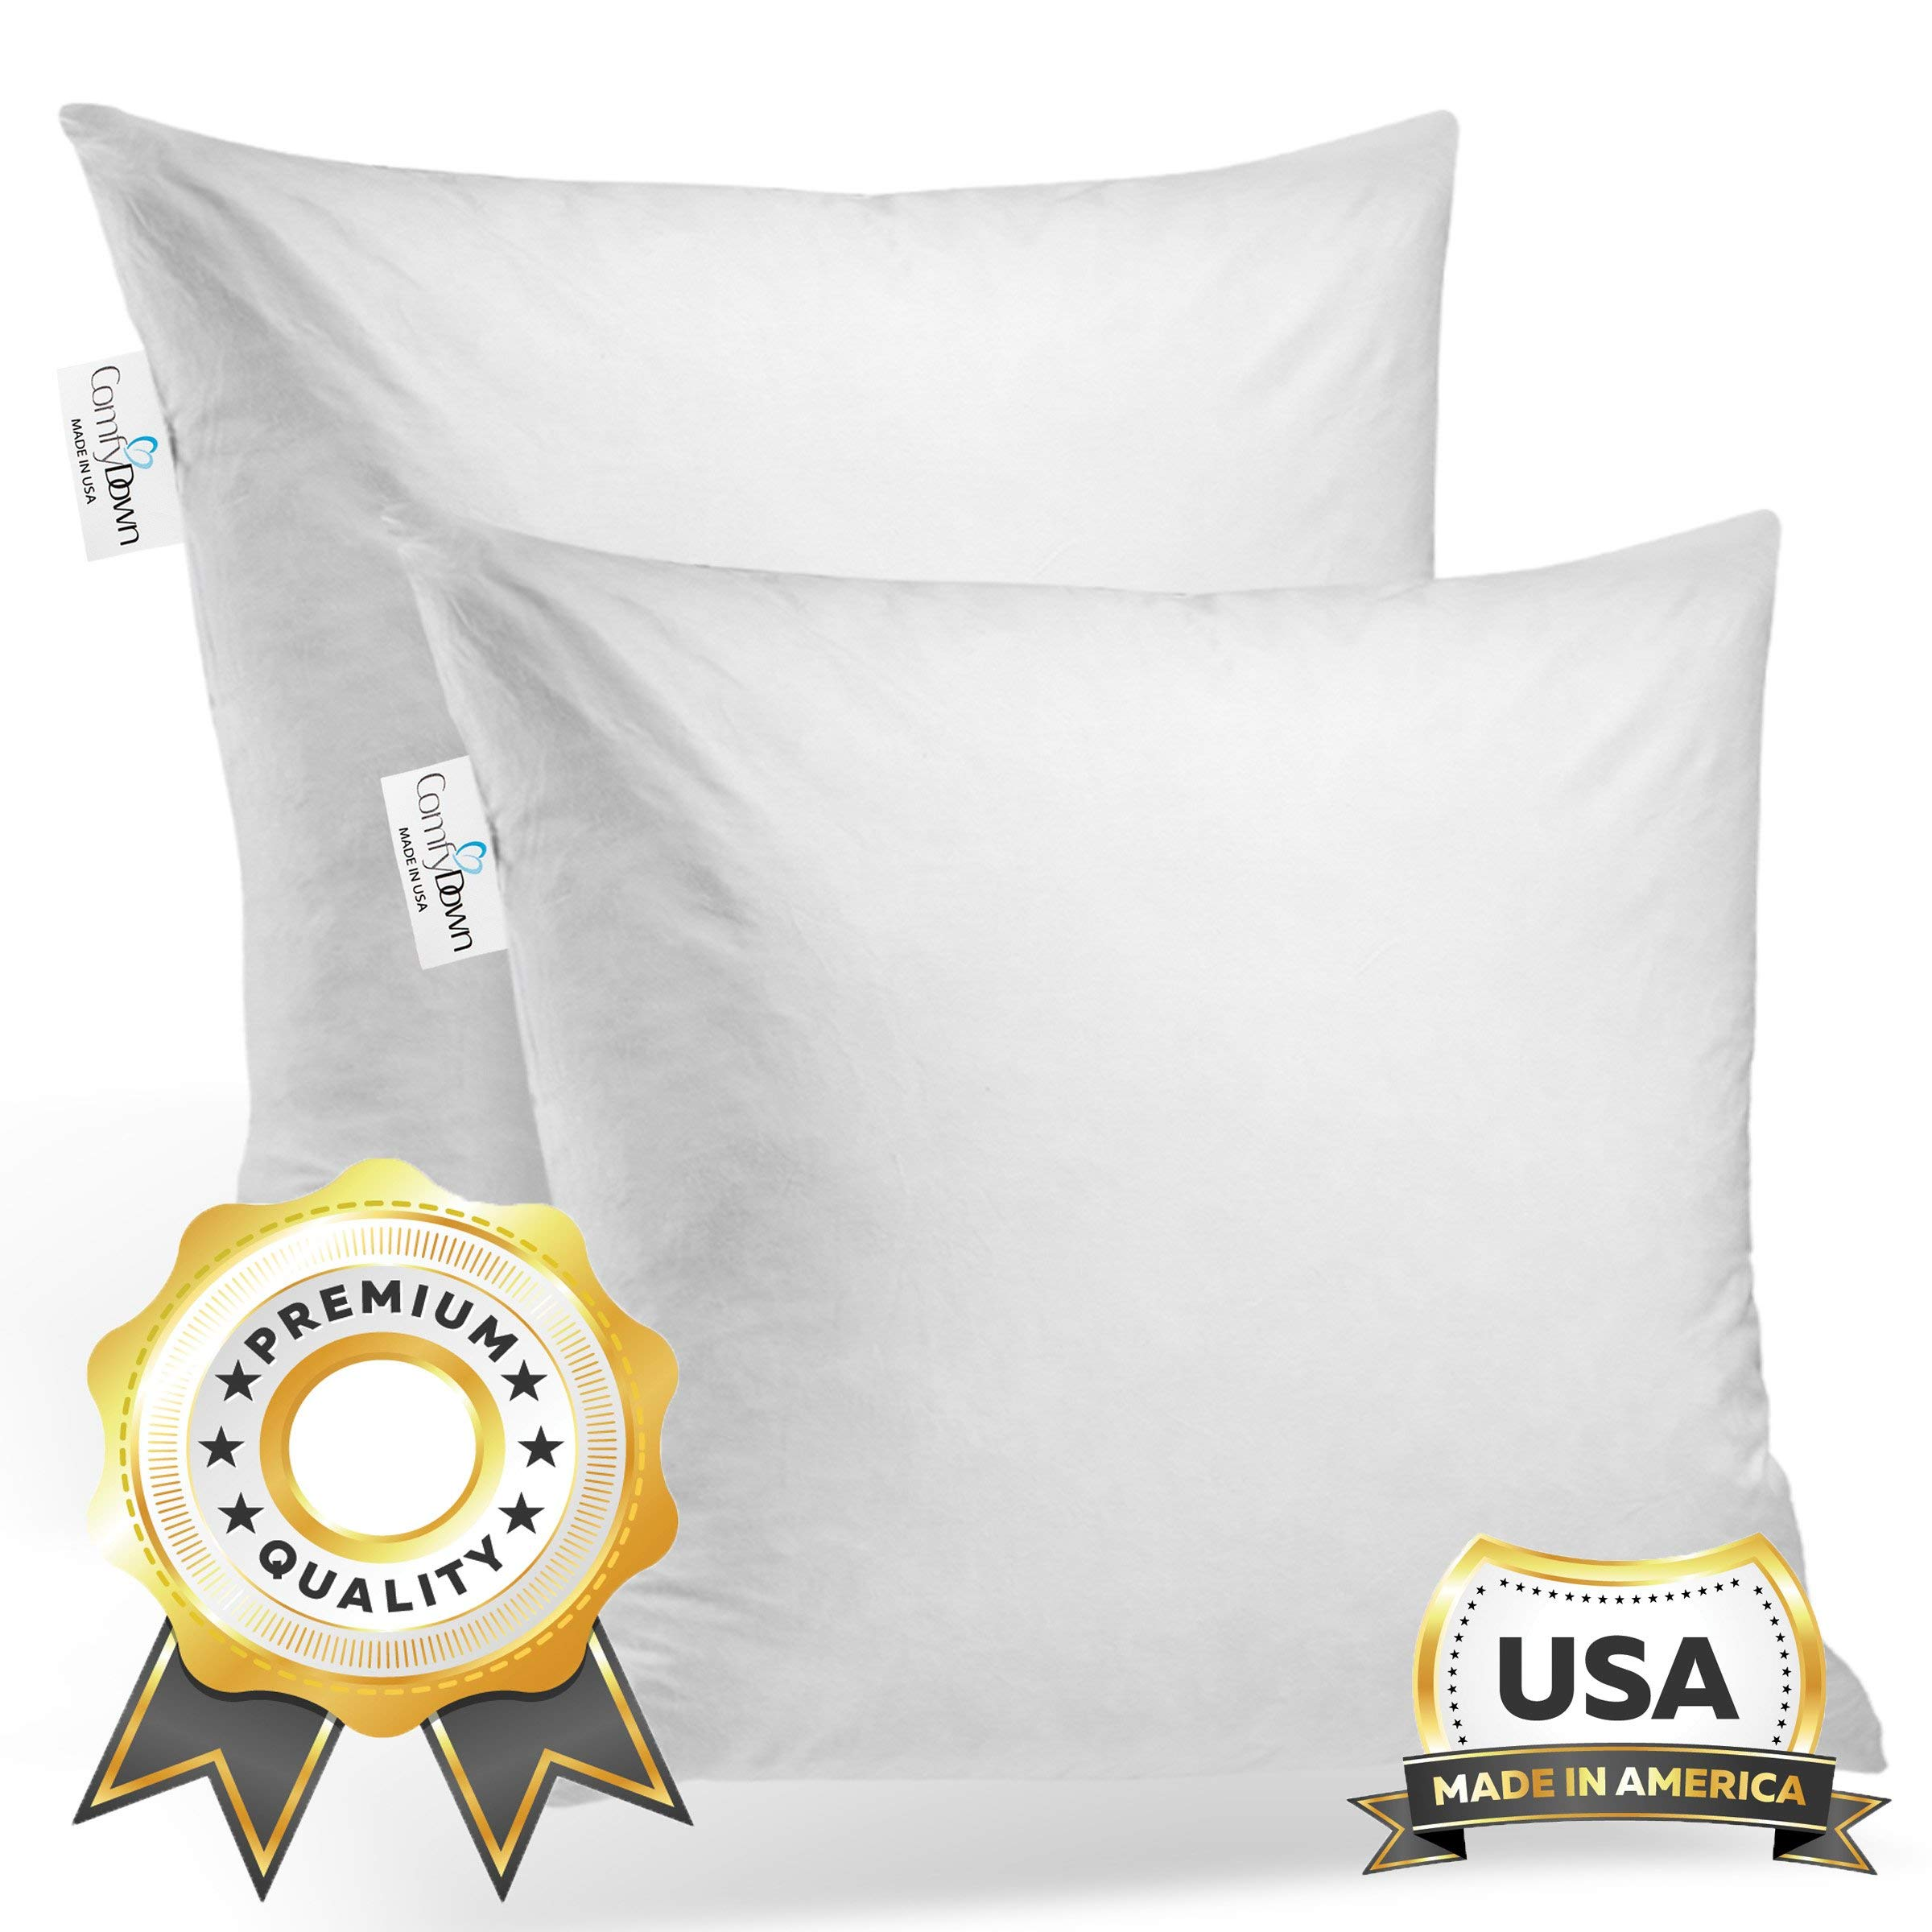 ComfyDown Set of Two, 95% Feather 5% Down, 28 X 28 Square Decorative Pillow Insert, Sham Stuffer - Made in USA